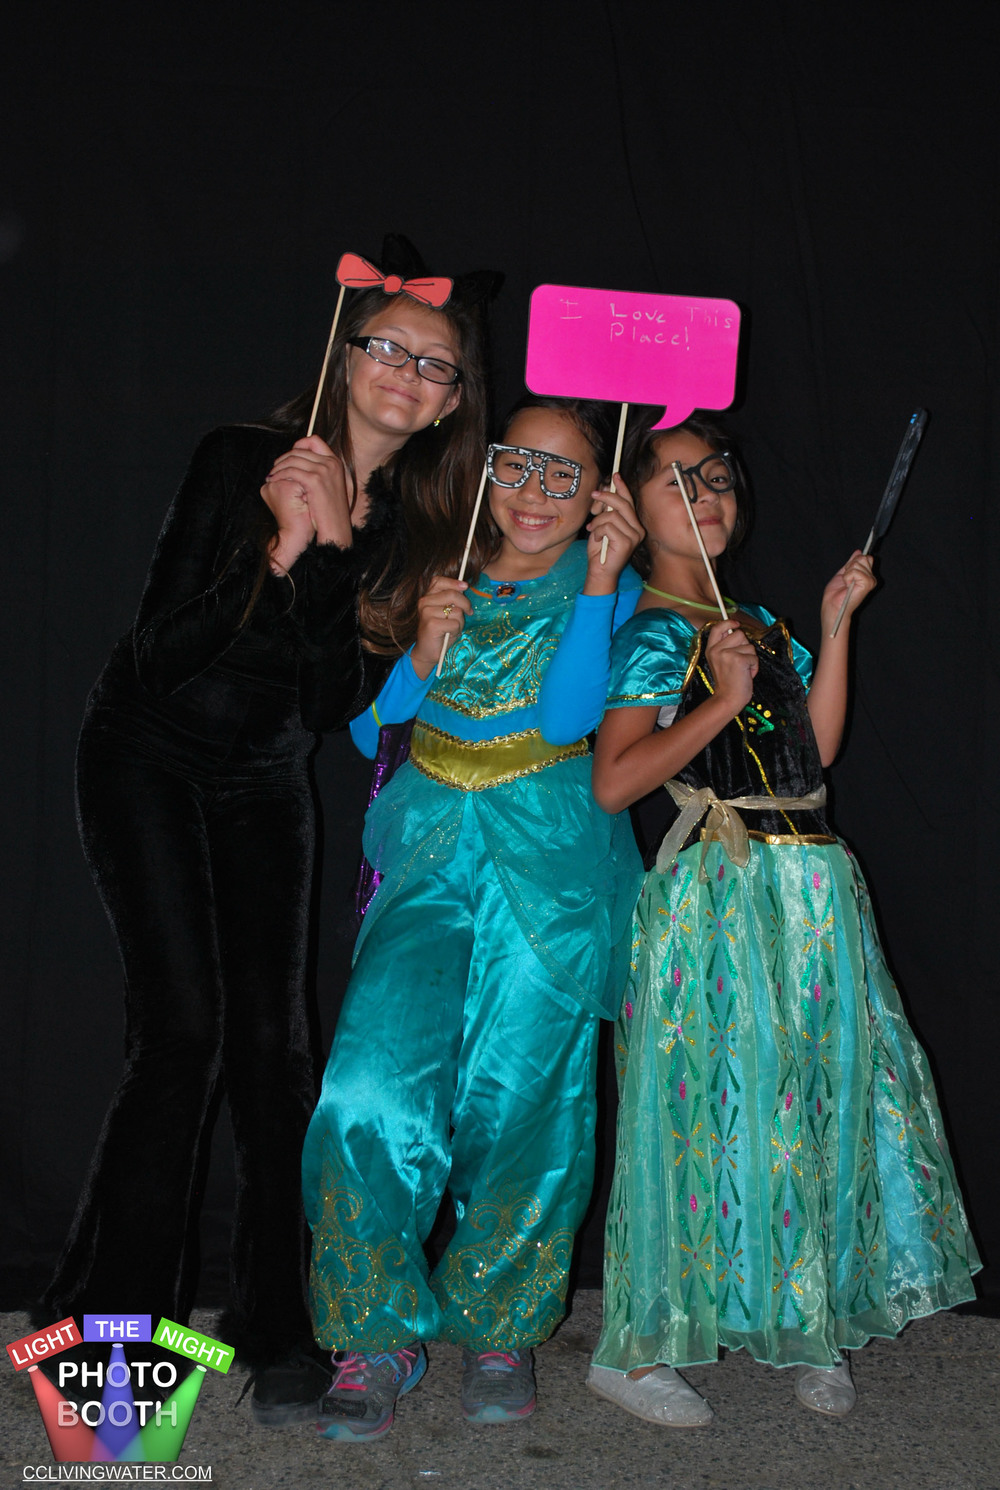 2014-10 - Light The Night Photo Booth (133) copy.jpg